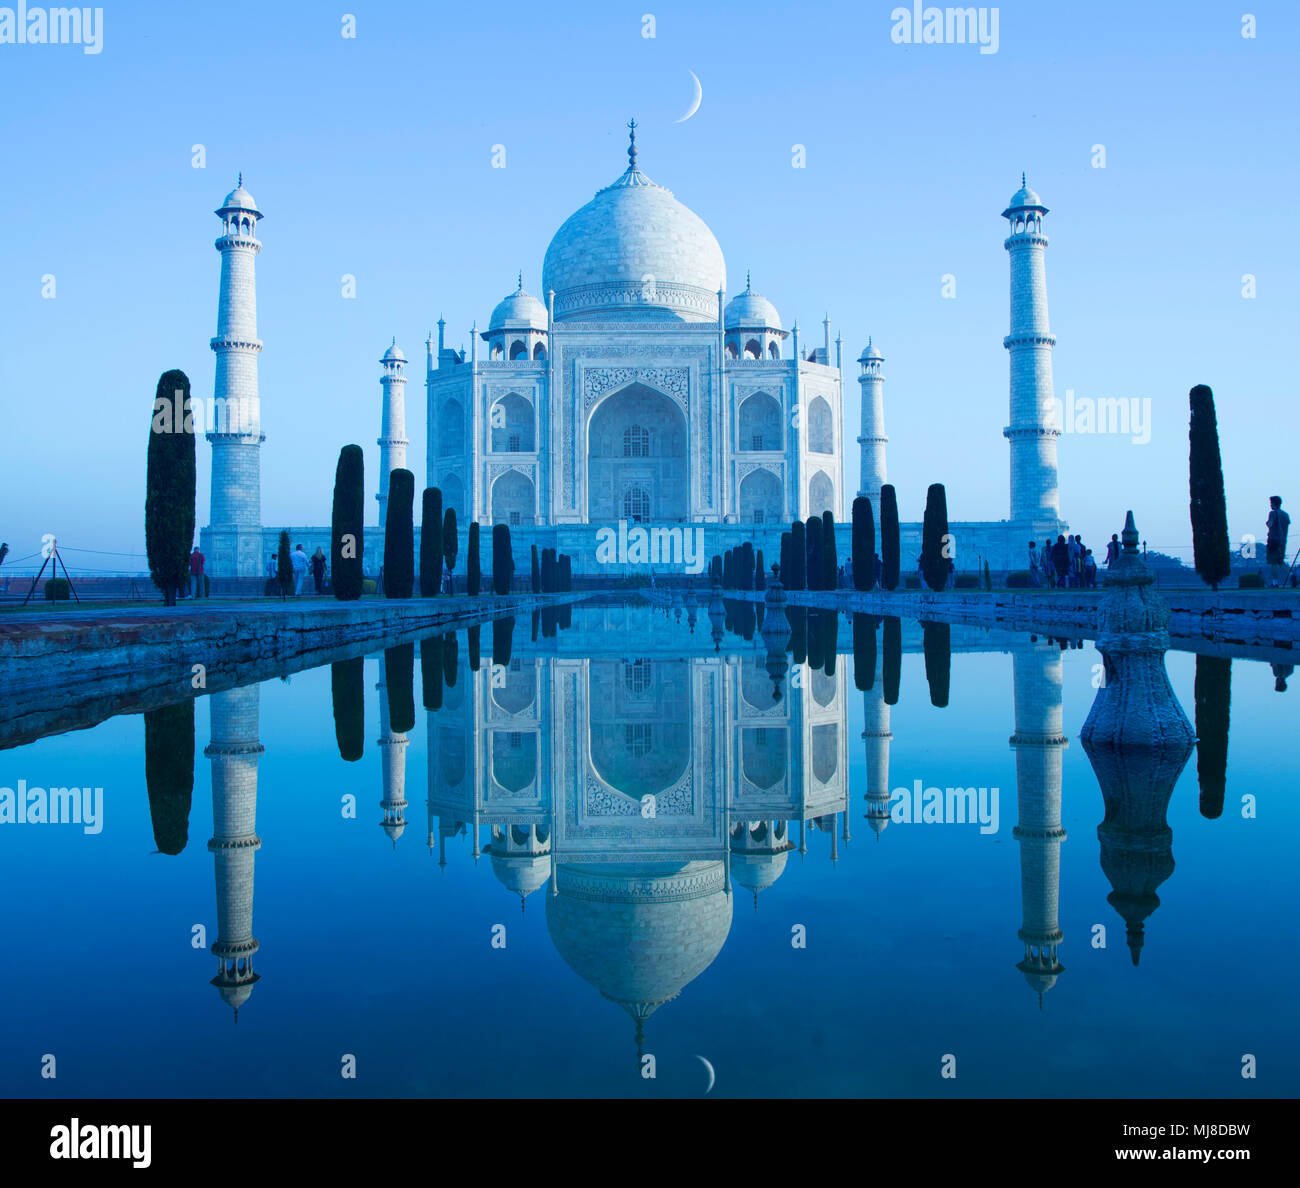 Exterior view of the Taj Mahal palace and mausoleum, a UNESCO world heritage site, a palace with white marble walls inlaid with decorative detail. - Stock Image